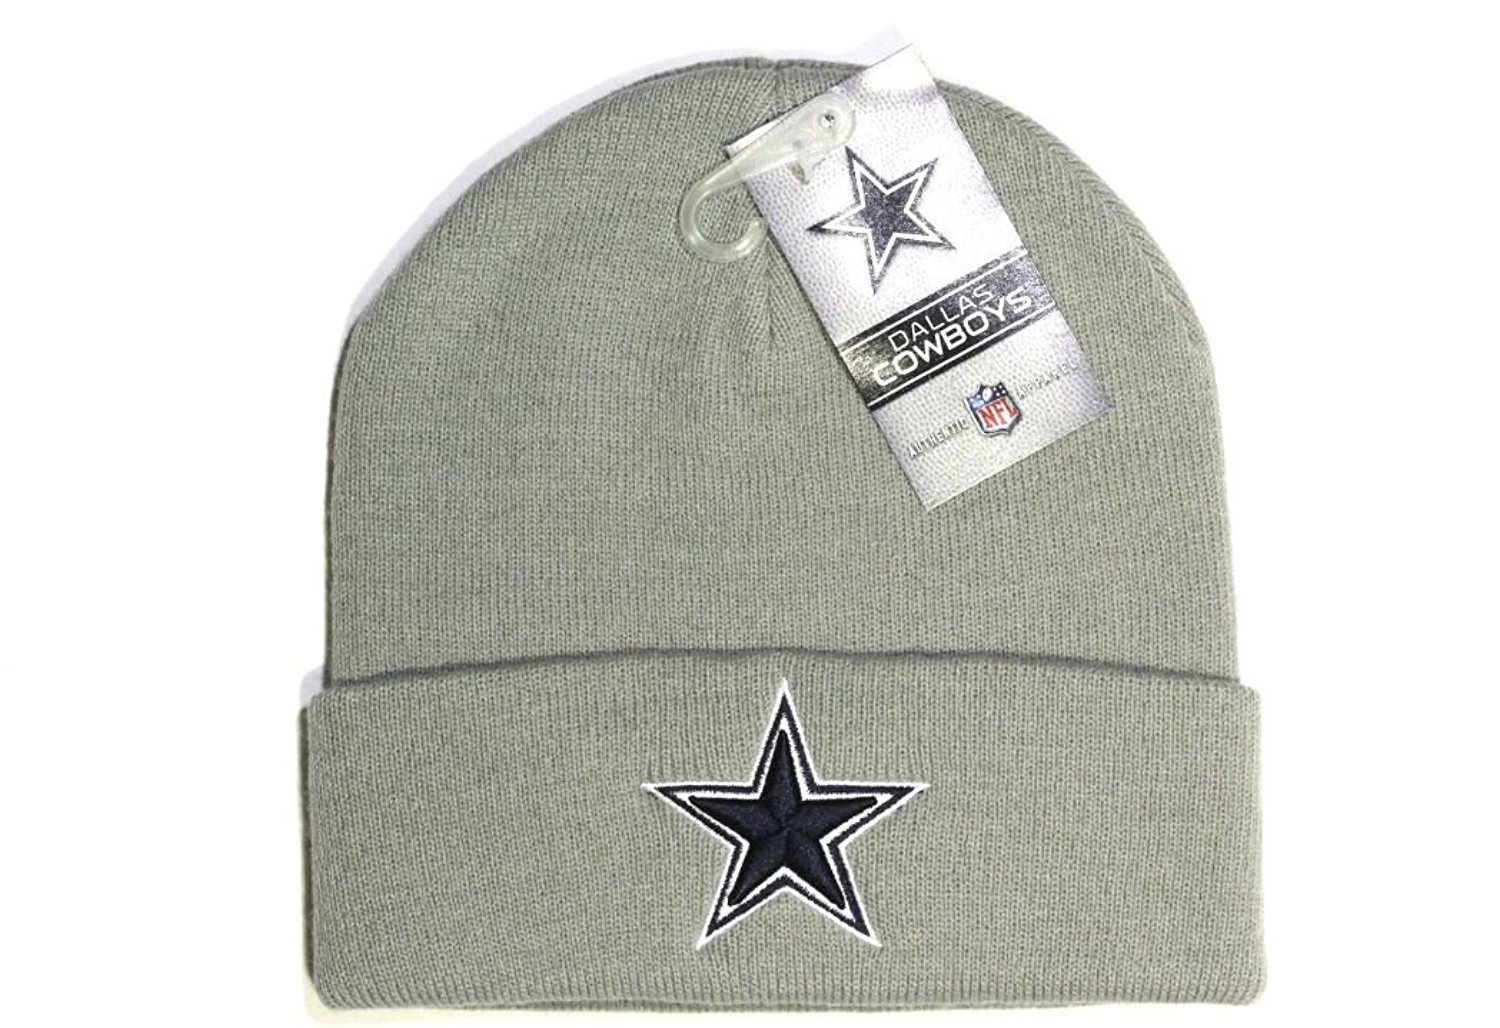 4cfc9533a4ce3 Get Quotations · Dallas Cowboys Basic Knit Hat